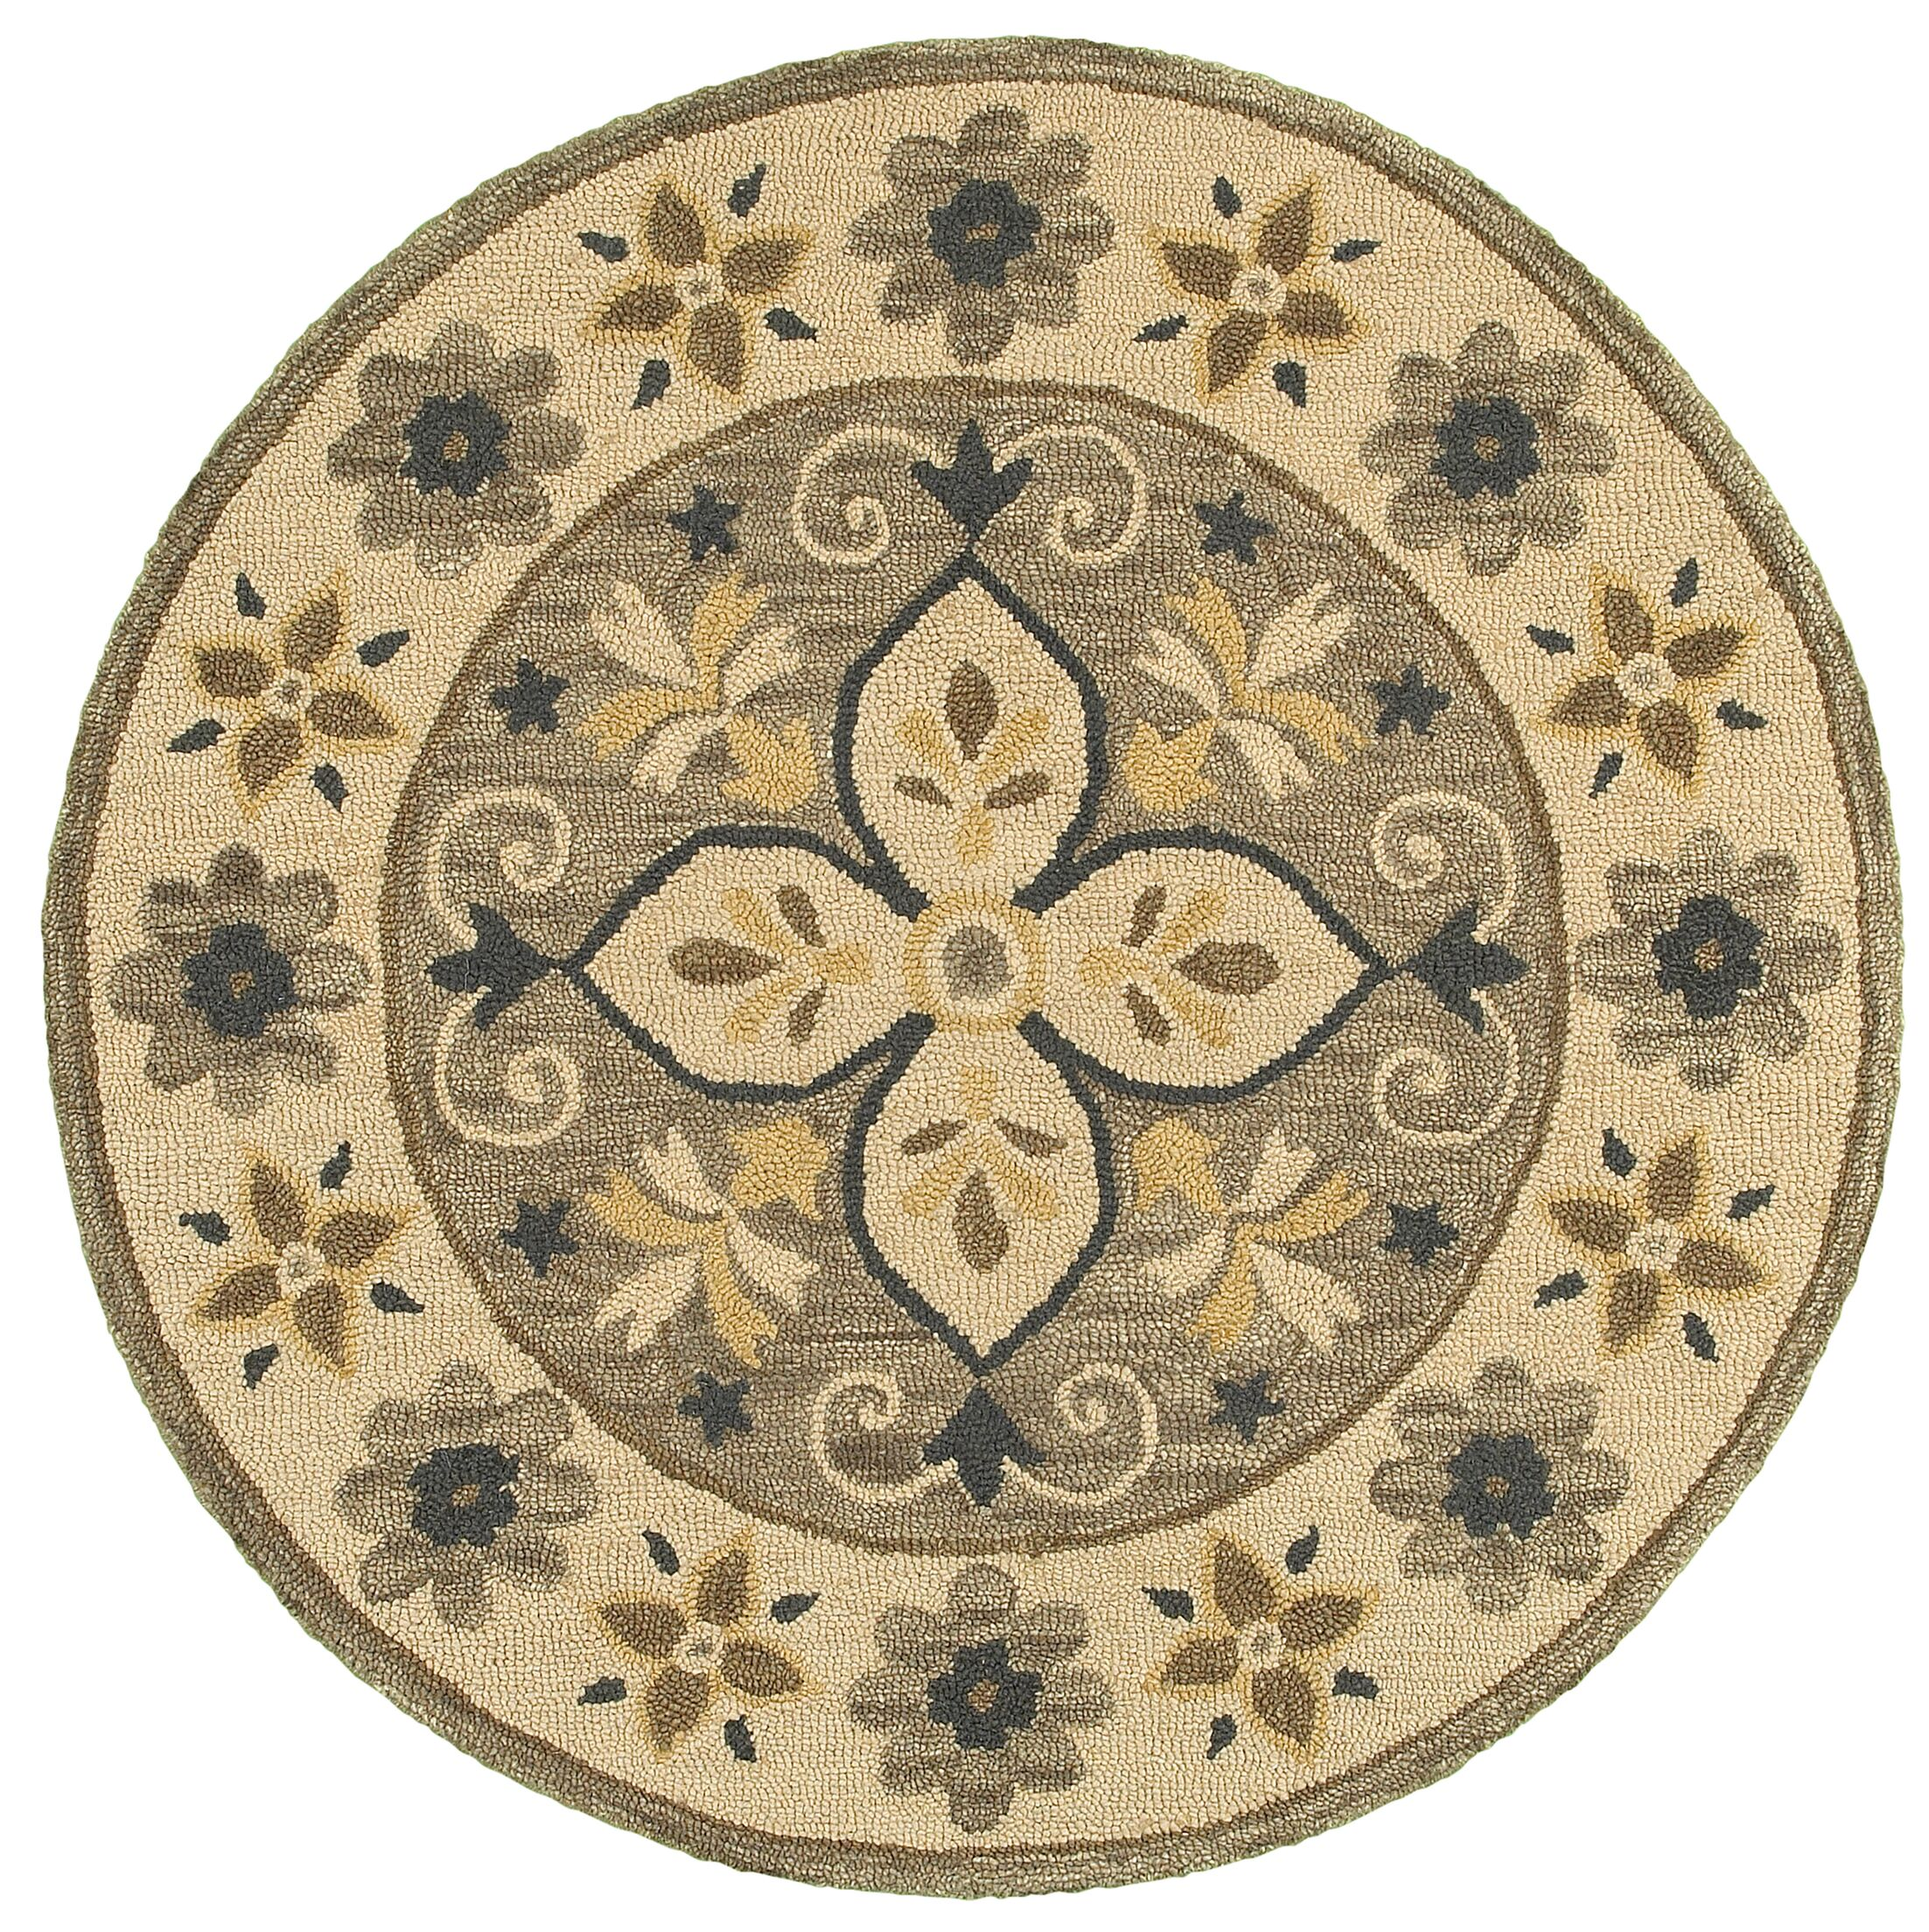 Owensboro Hand-Tufted Taupe Area Rug Rug Size: Round 6'